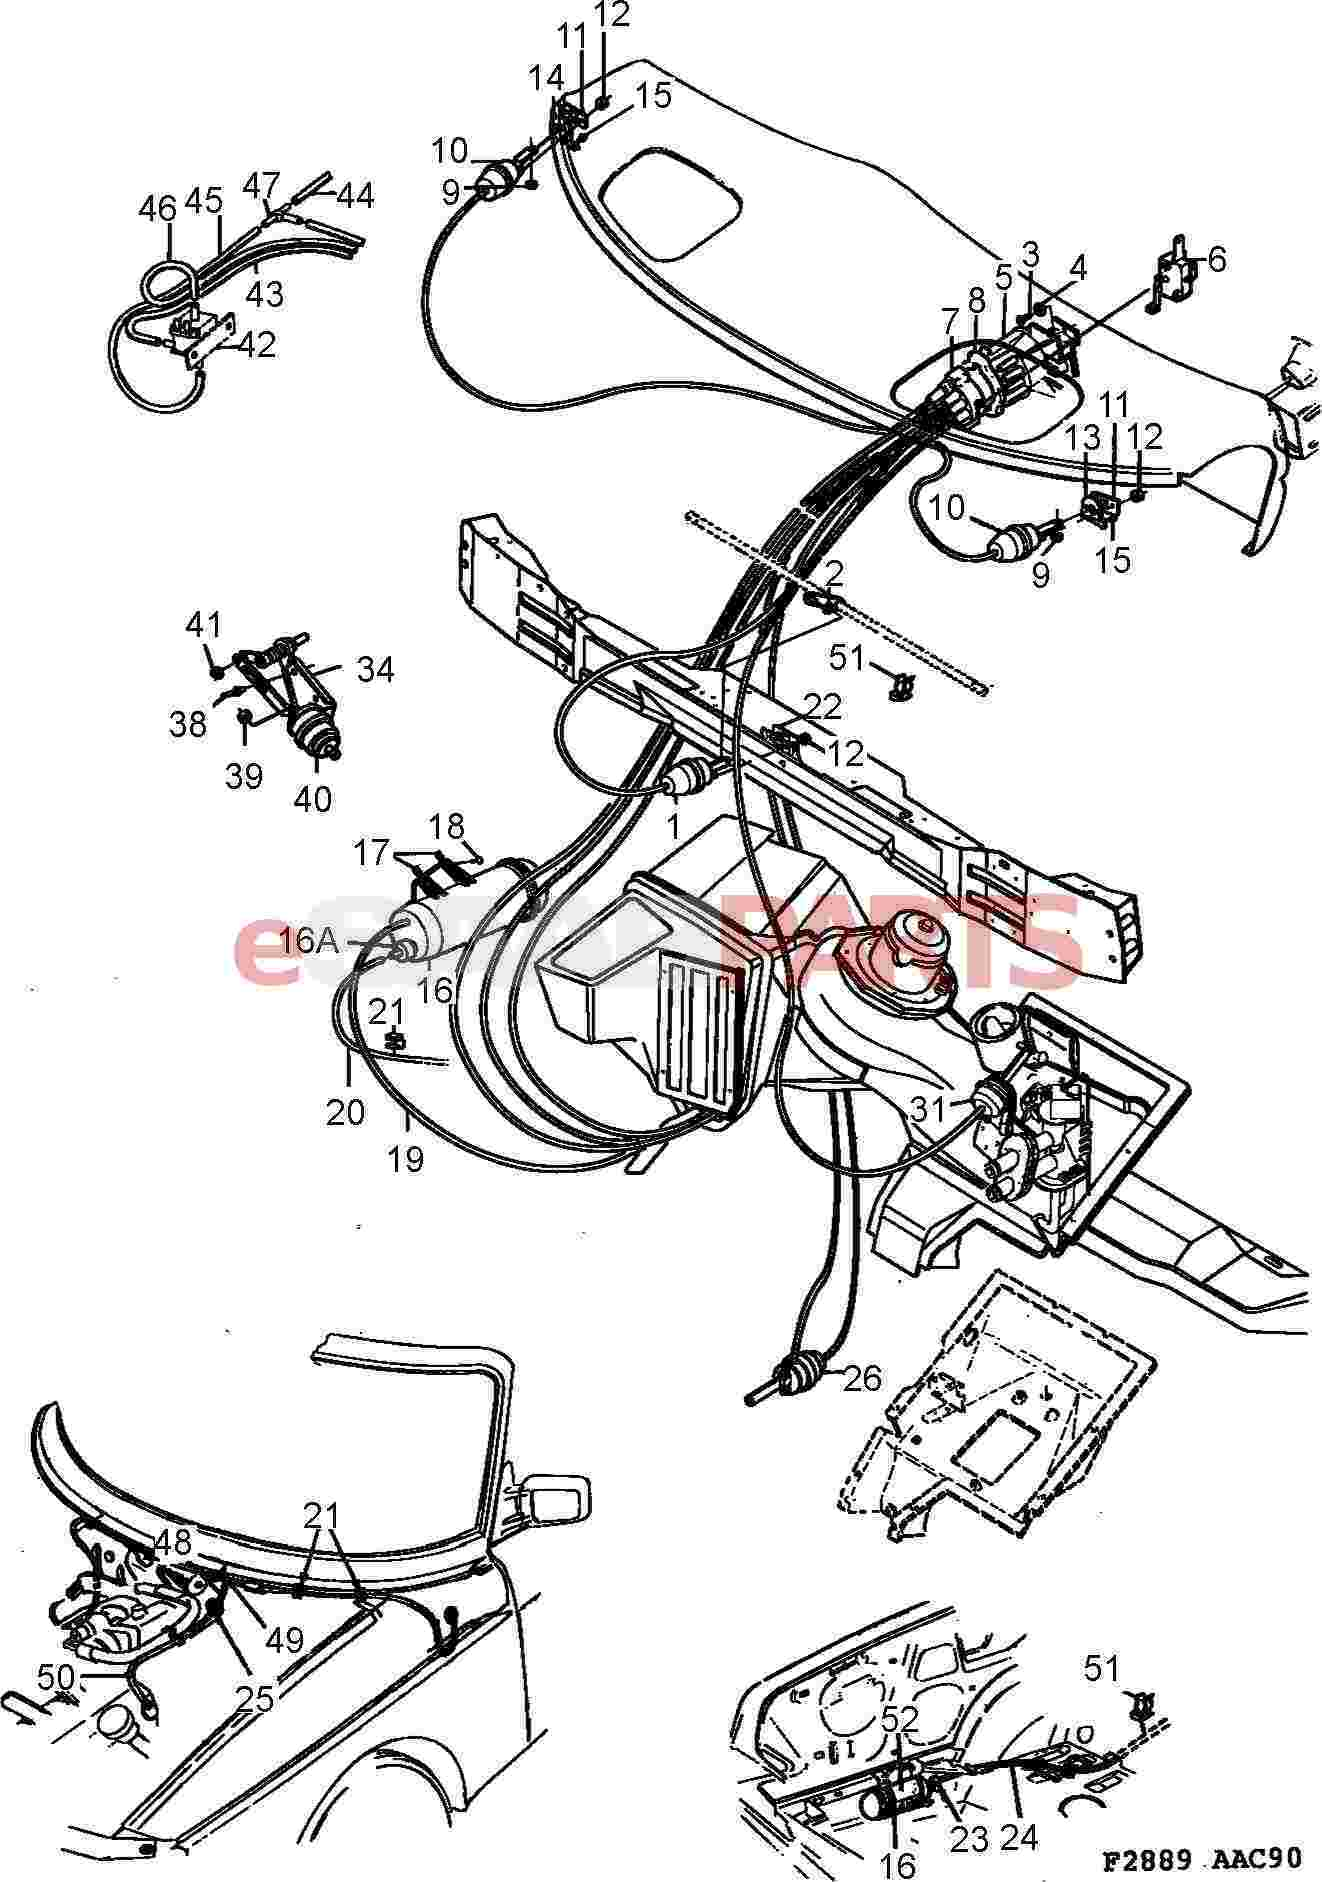 esaabparts com saab 900 u003e heating air conditioning parts rh esaabparts com saab 9 3 vacuum line diagram saab 900 vacuum hose diagram